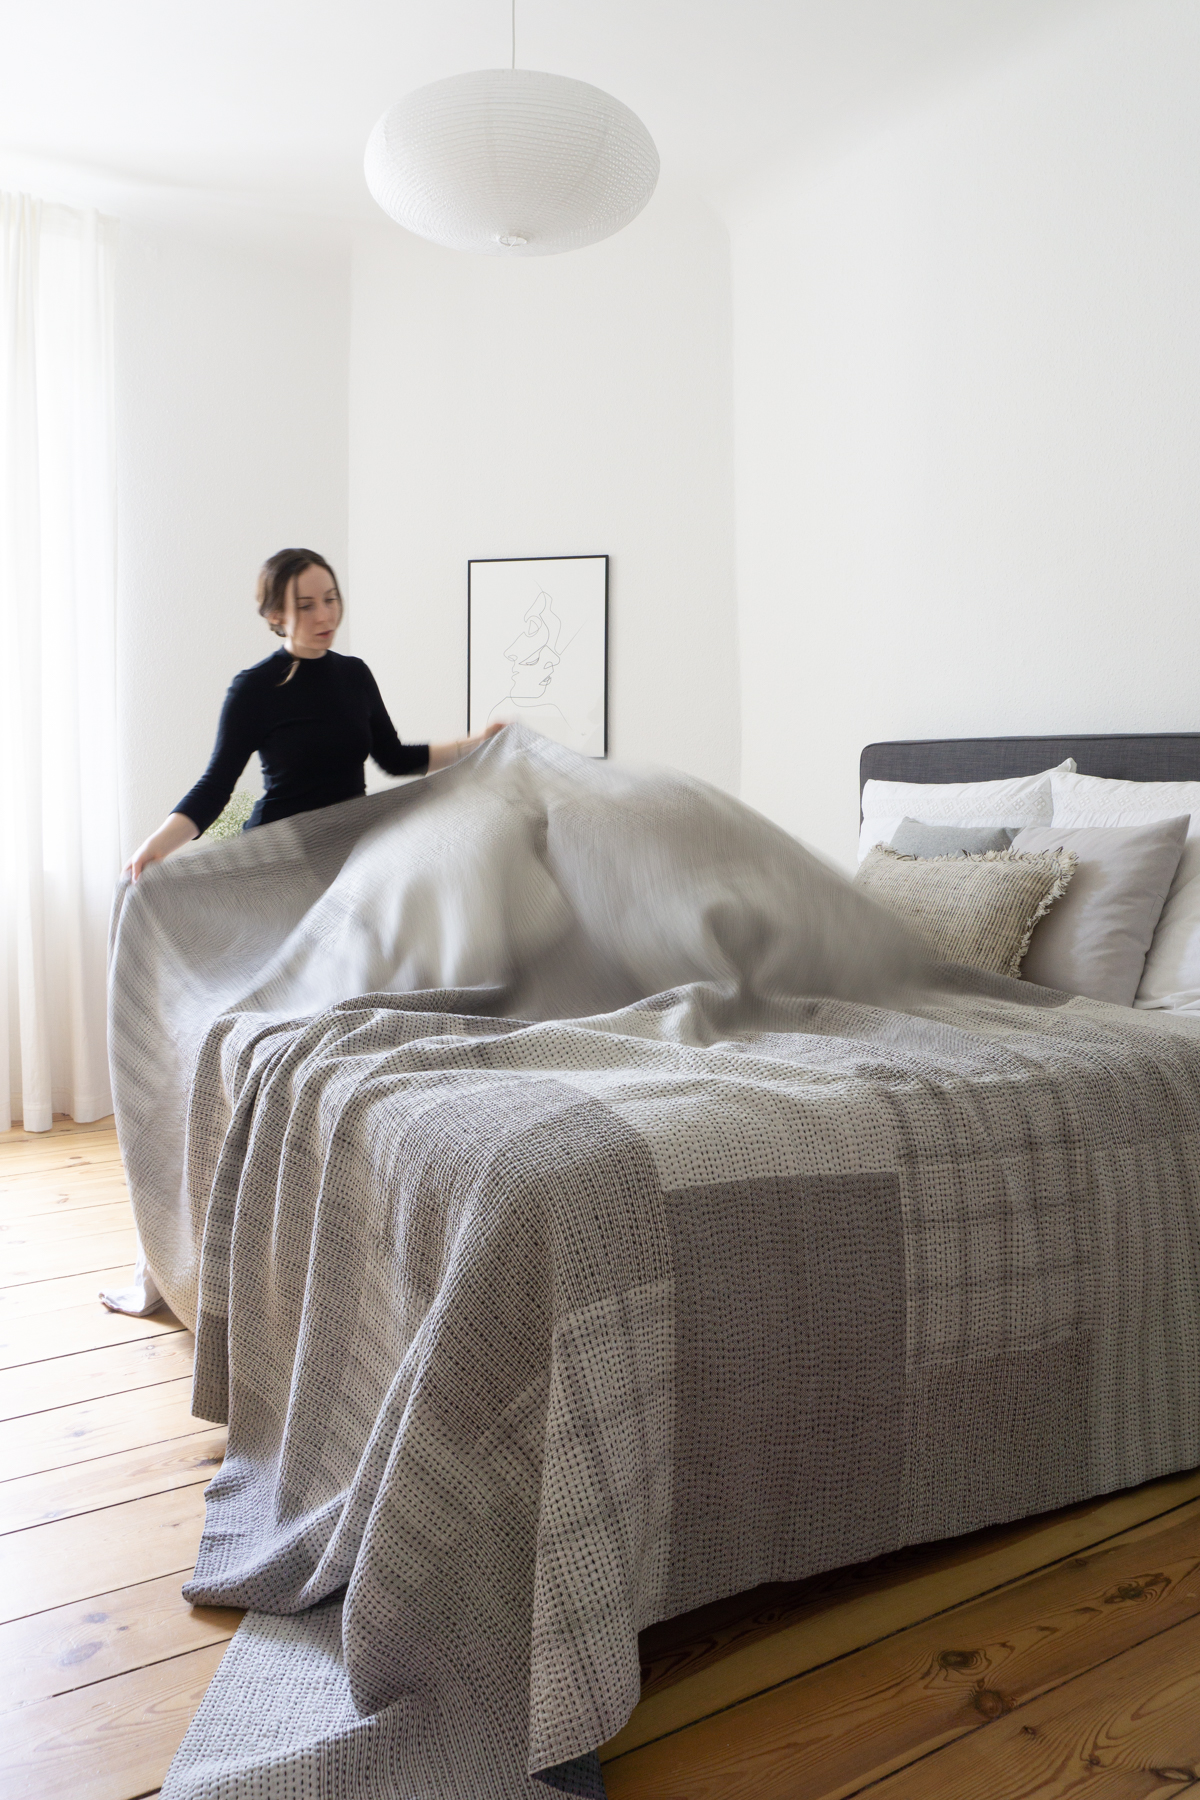 stitch-by-stitch-sustainable-ethical-organic-bedding-textiles-interior-design-bedroom-rg-daily-blog-6.jpg